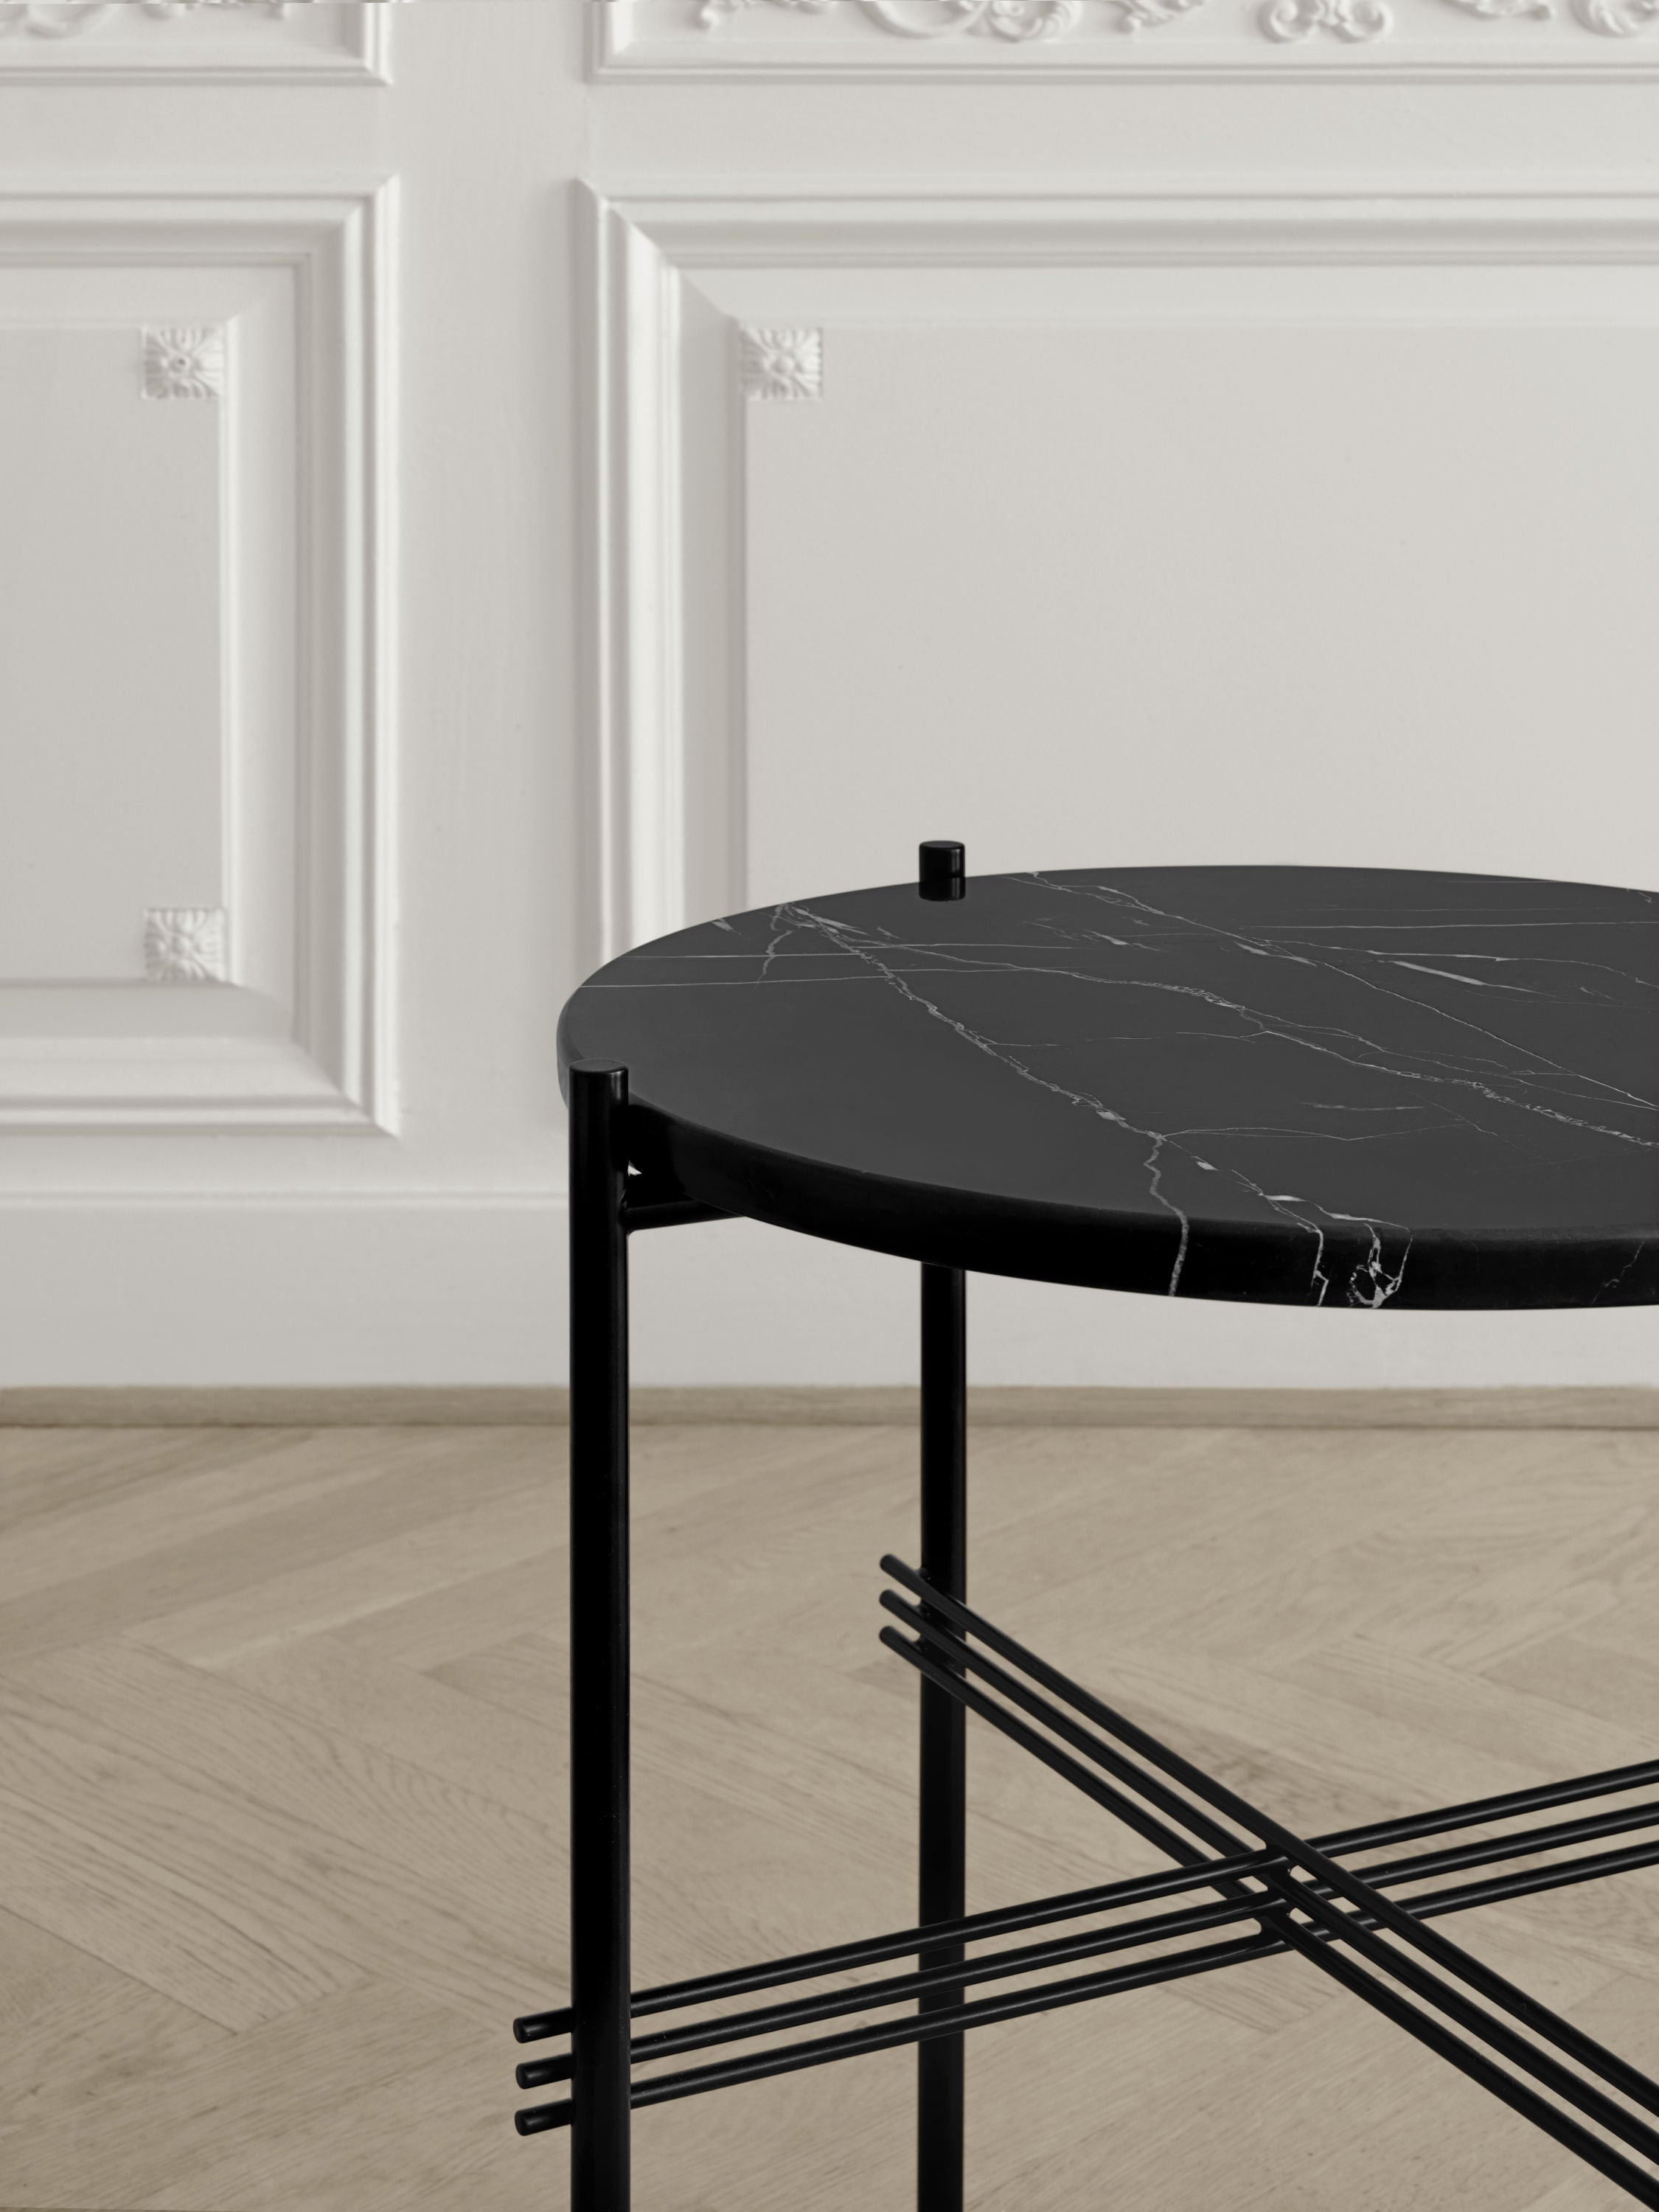 TS Coffee Table - Dia 40 Black base, glass dusty green top fra GUBI